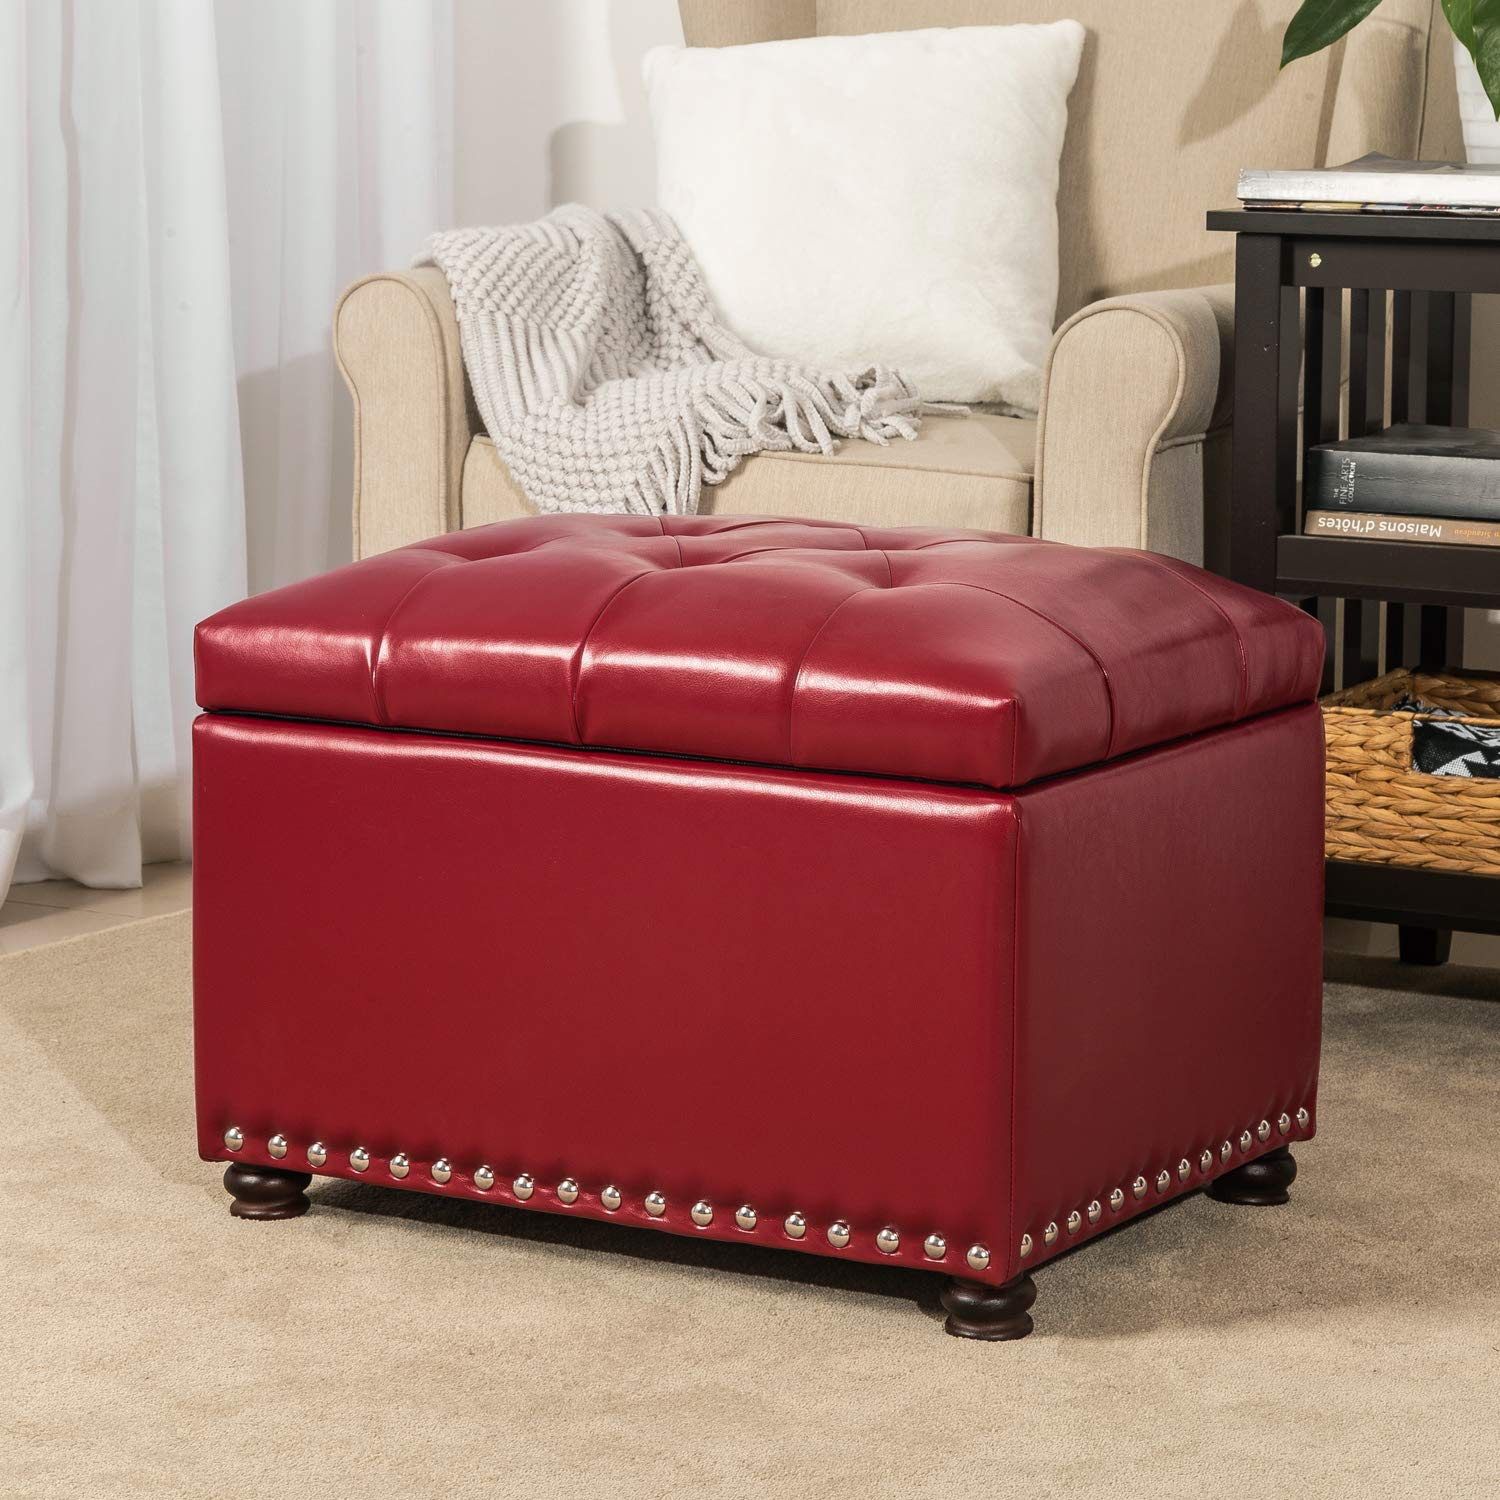 Homebeez Tufted Storage Ottoman Bench Faux Leather Footrest Stool with Lift Top & Nailhead Trim FT40AM03HB3-4, Medium, Red by Homebeez